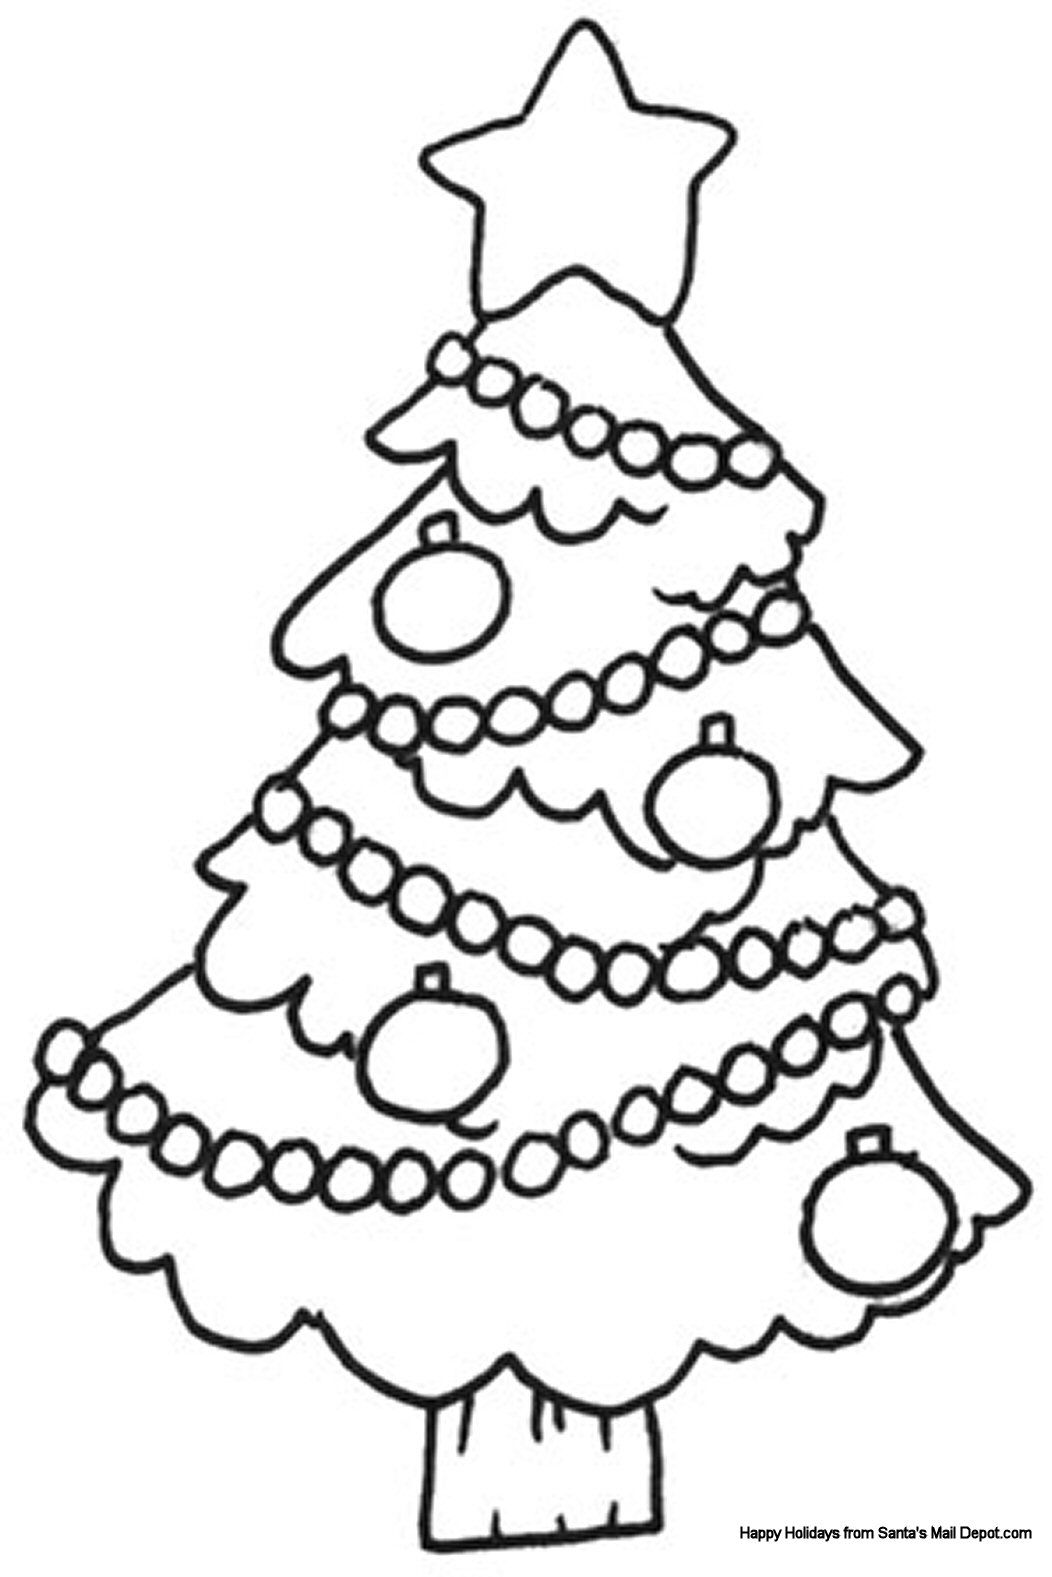 christmas colouring sheet free online printable coloring pages sheets for kids get the latest free christmas colouring sheet images favorite coloring